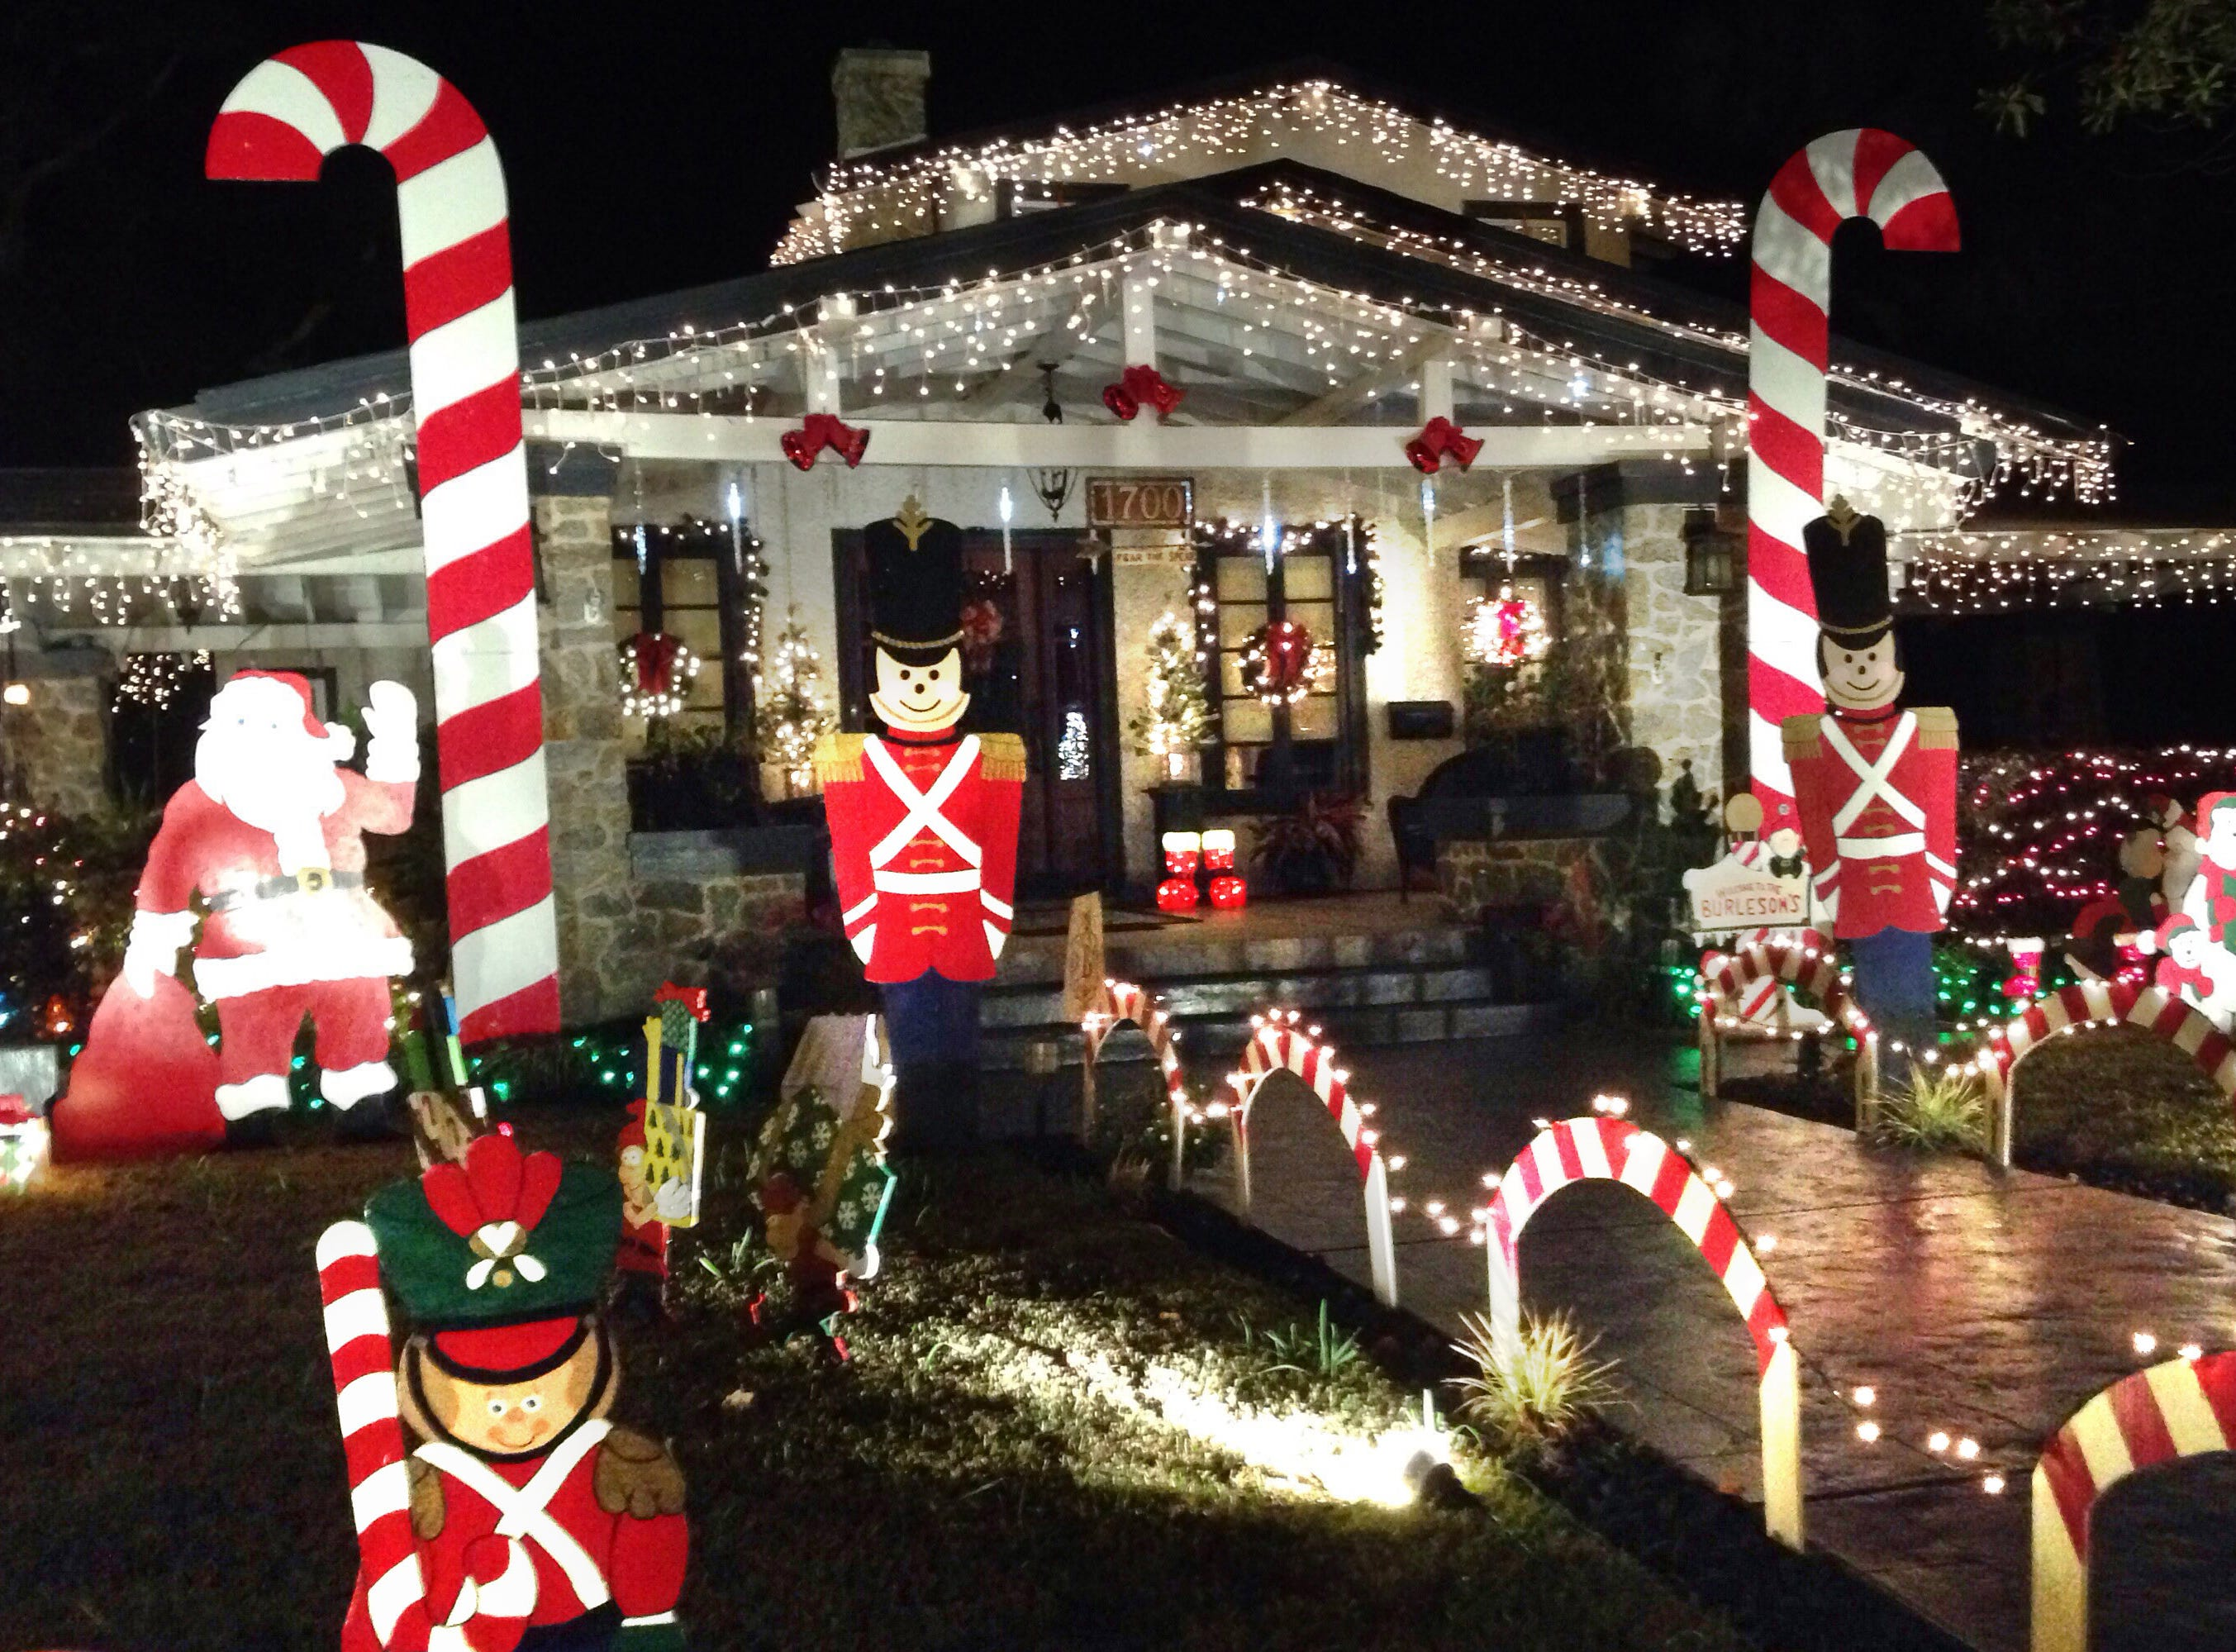 An elaborate Christmas display at Mike Burleson's home at 17th Avenue and Gadsden Street in East Hill is pictured in December 2014. After 25 years, Burleson says he will no longer put up the popular display.